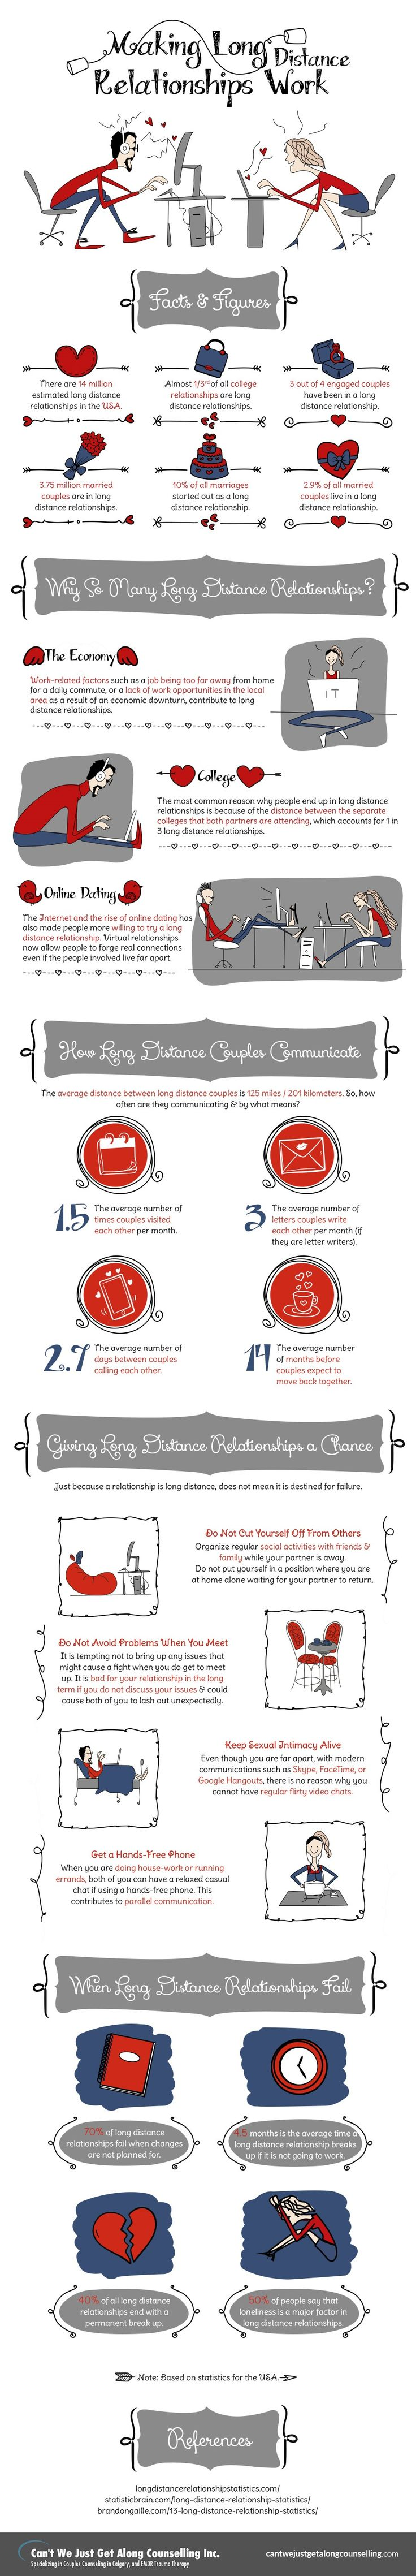 How do over 14 million people sustain a successful long distance relationship? Check out this infographic for the answers.